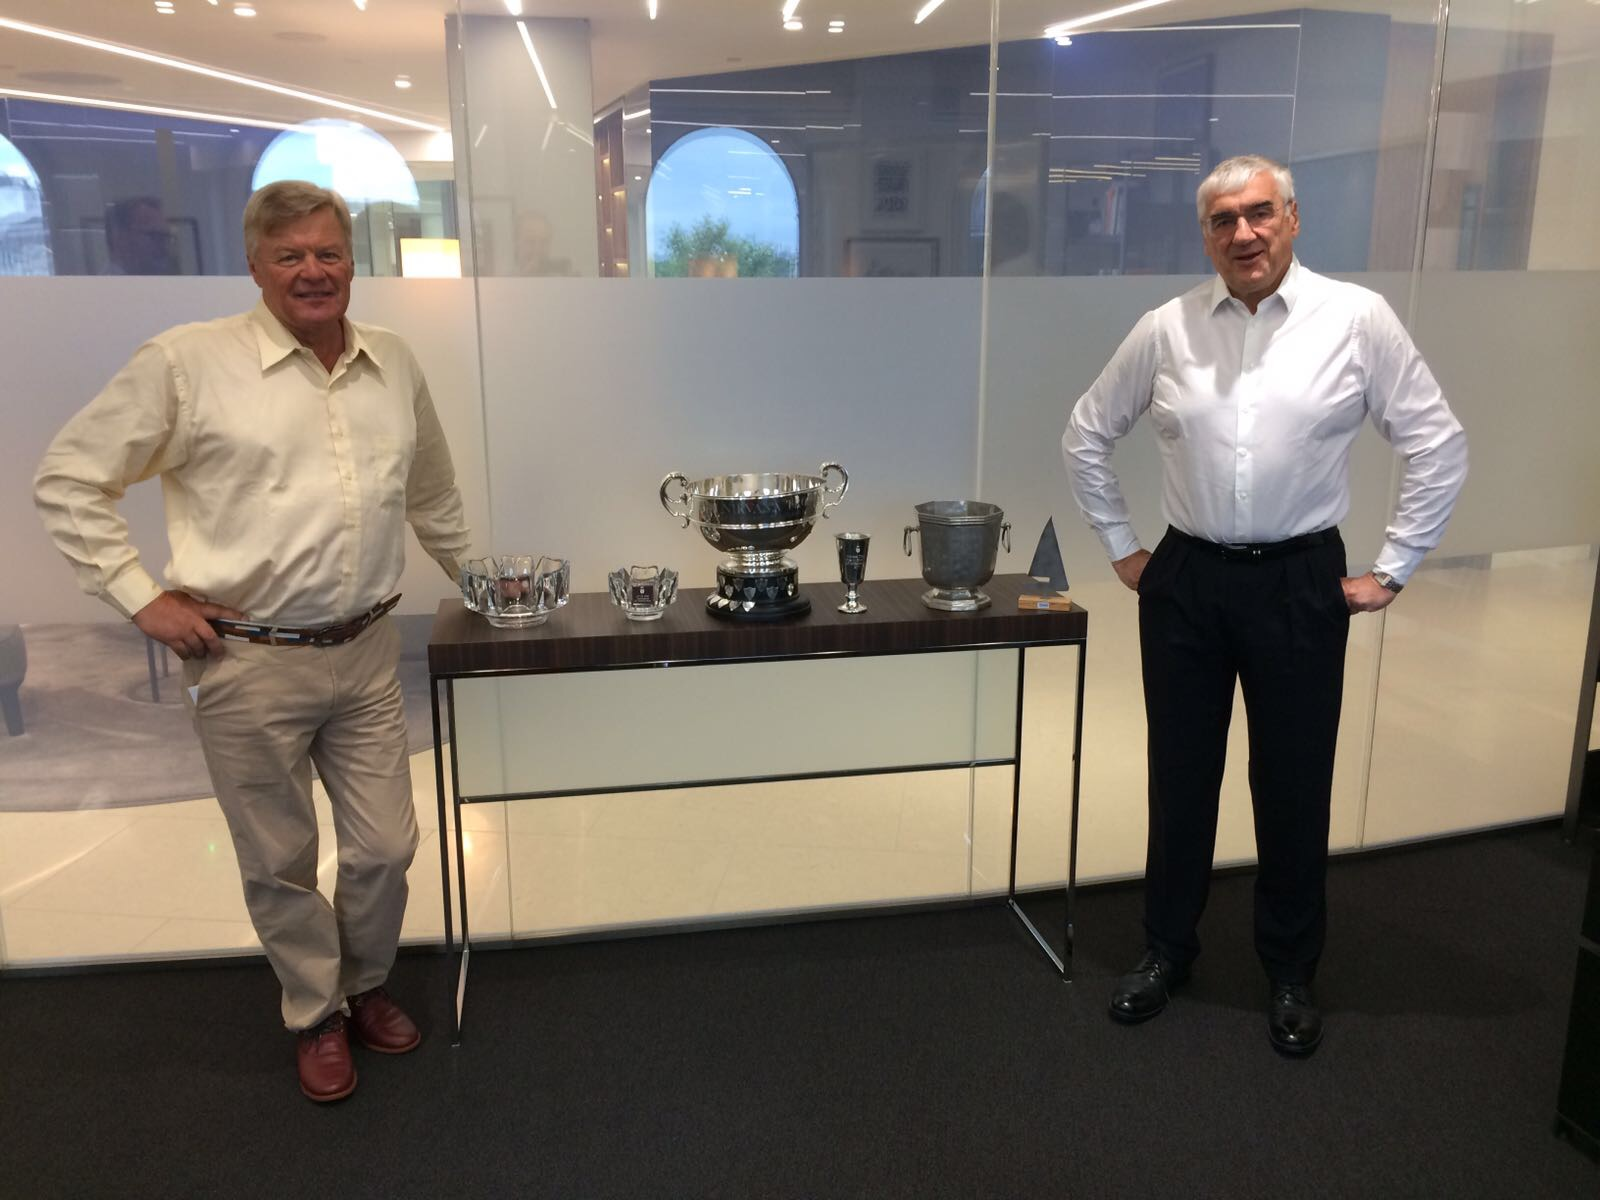 Sir Michael Hintze and Ludde Ingvall with the trophies from the ÅF Offshore Ocean Race